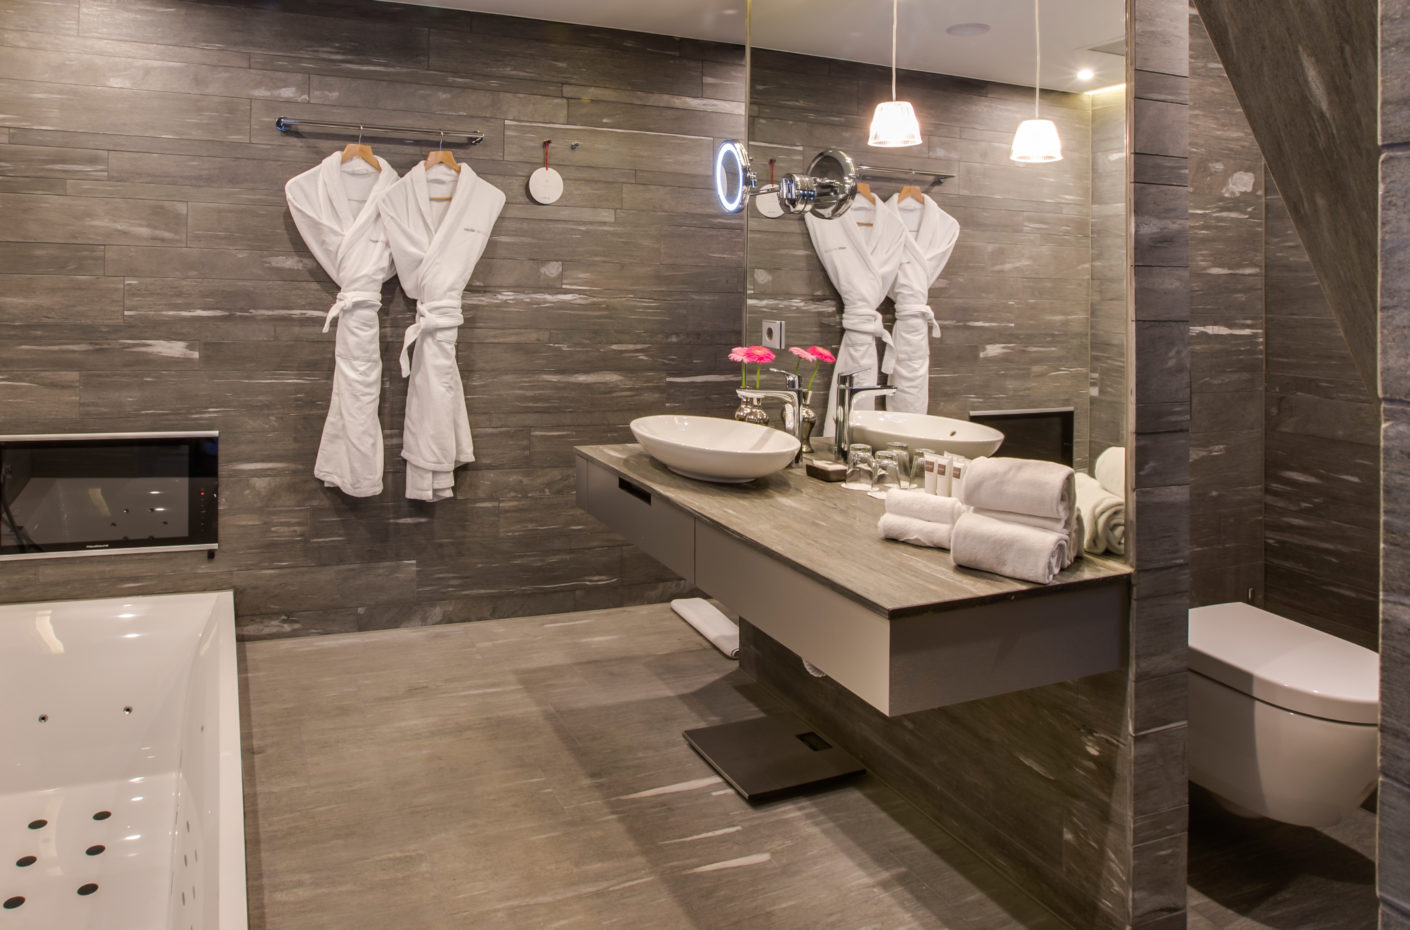 During the modernization the hotel prioritized products by Villeroy & Boch.